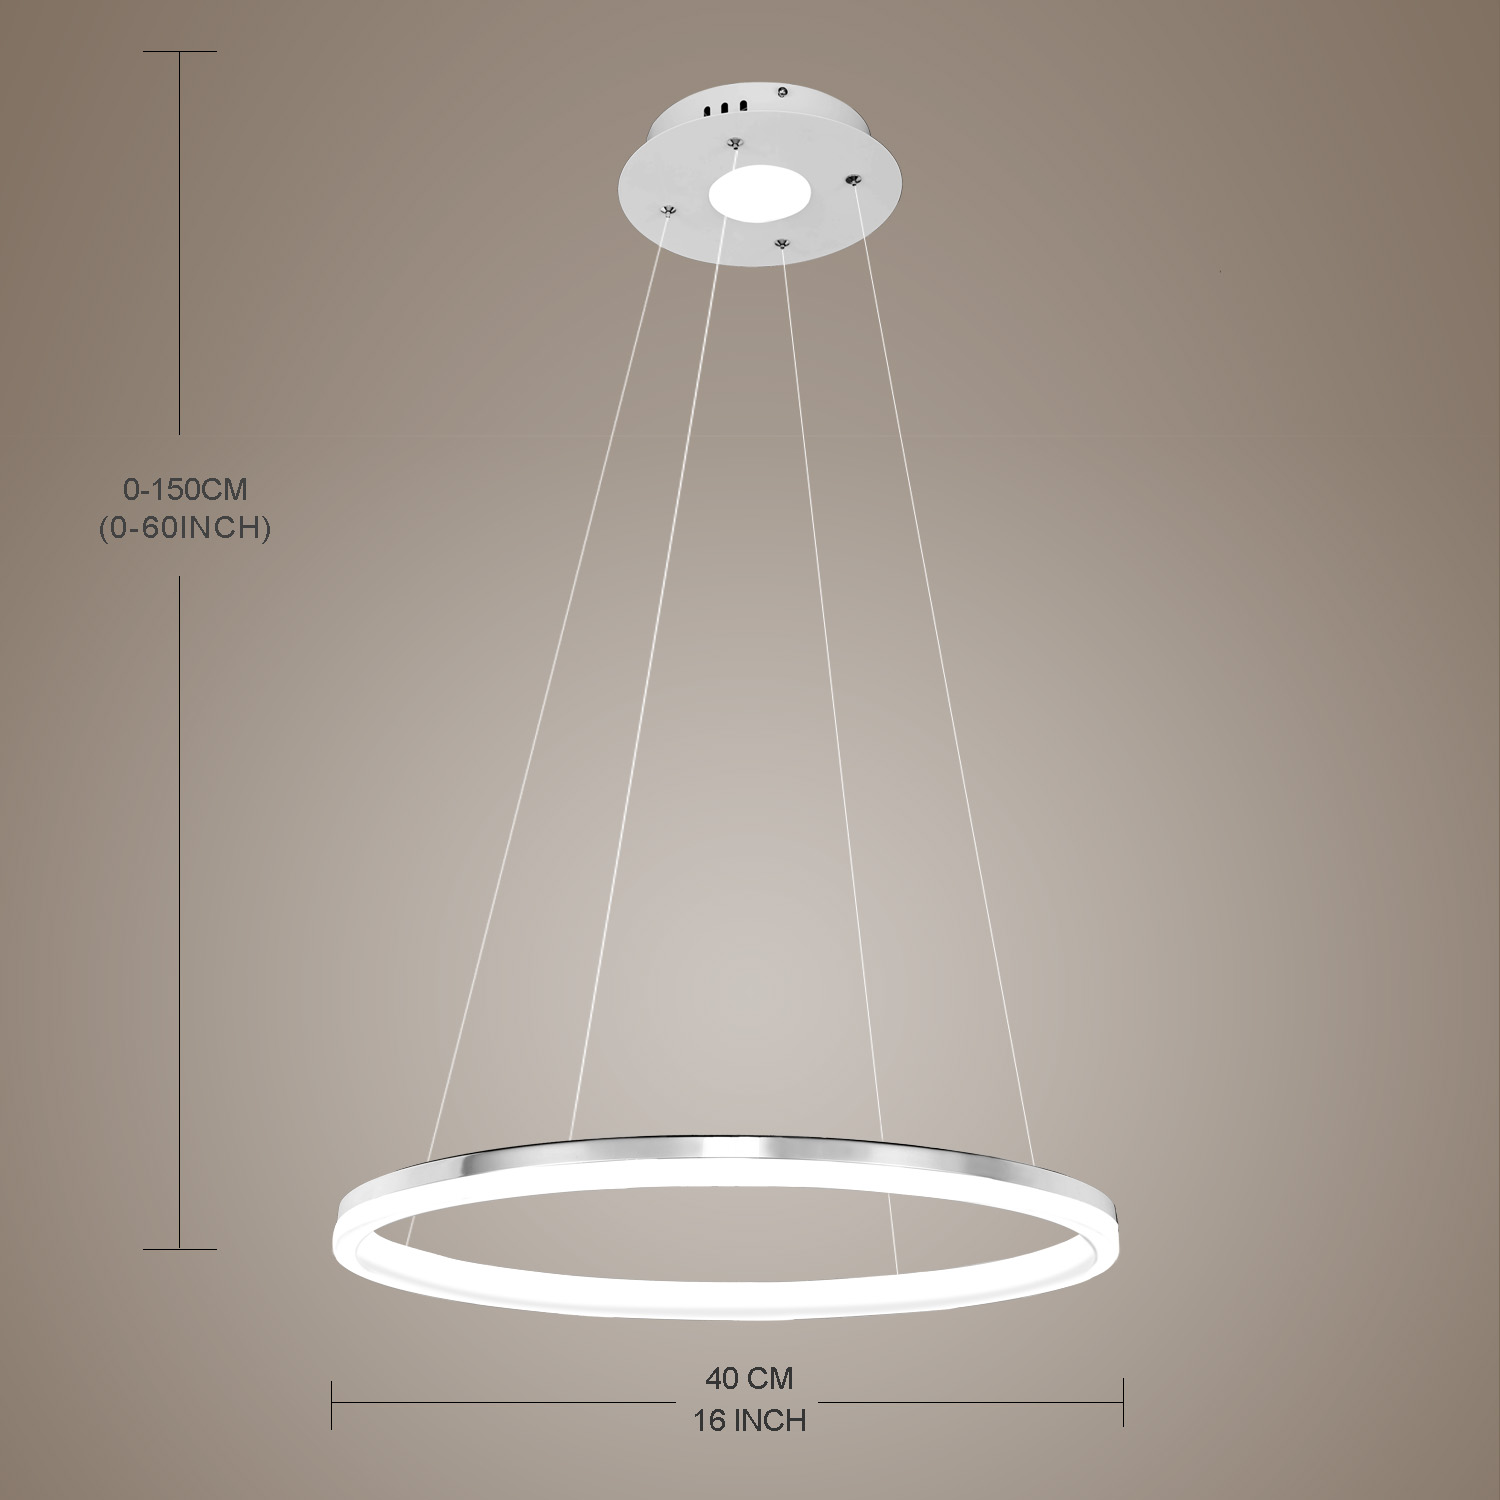 Moderne Simple Métal + Acrylique Blanc / blanc chaud LED SMD--1*15W Lustre